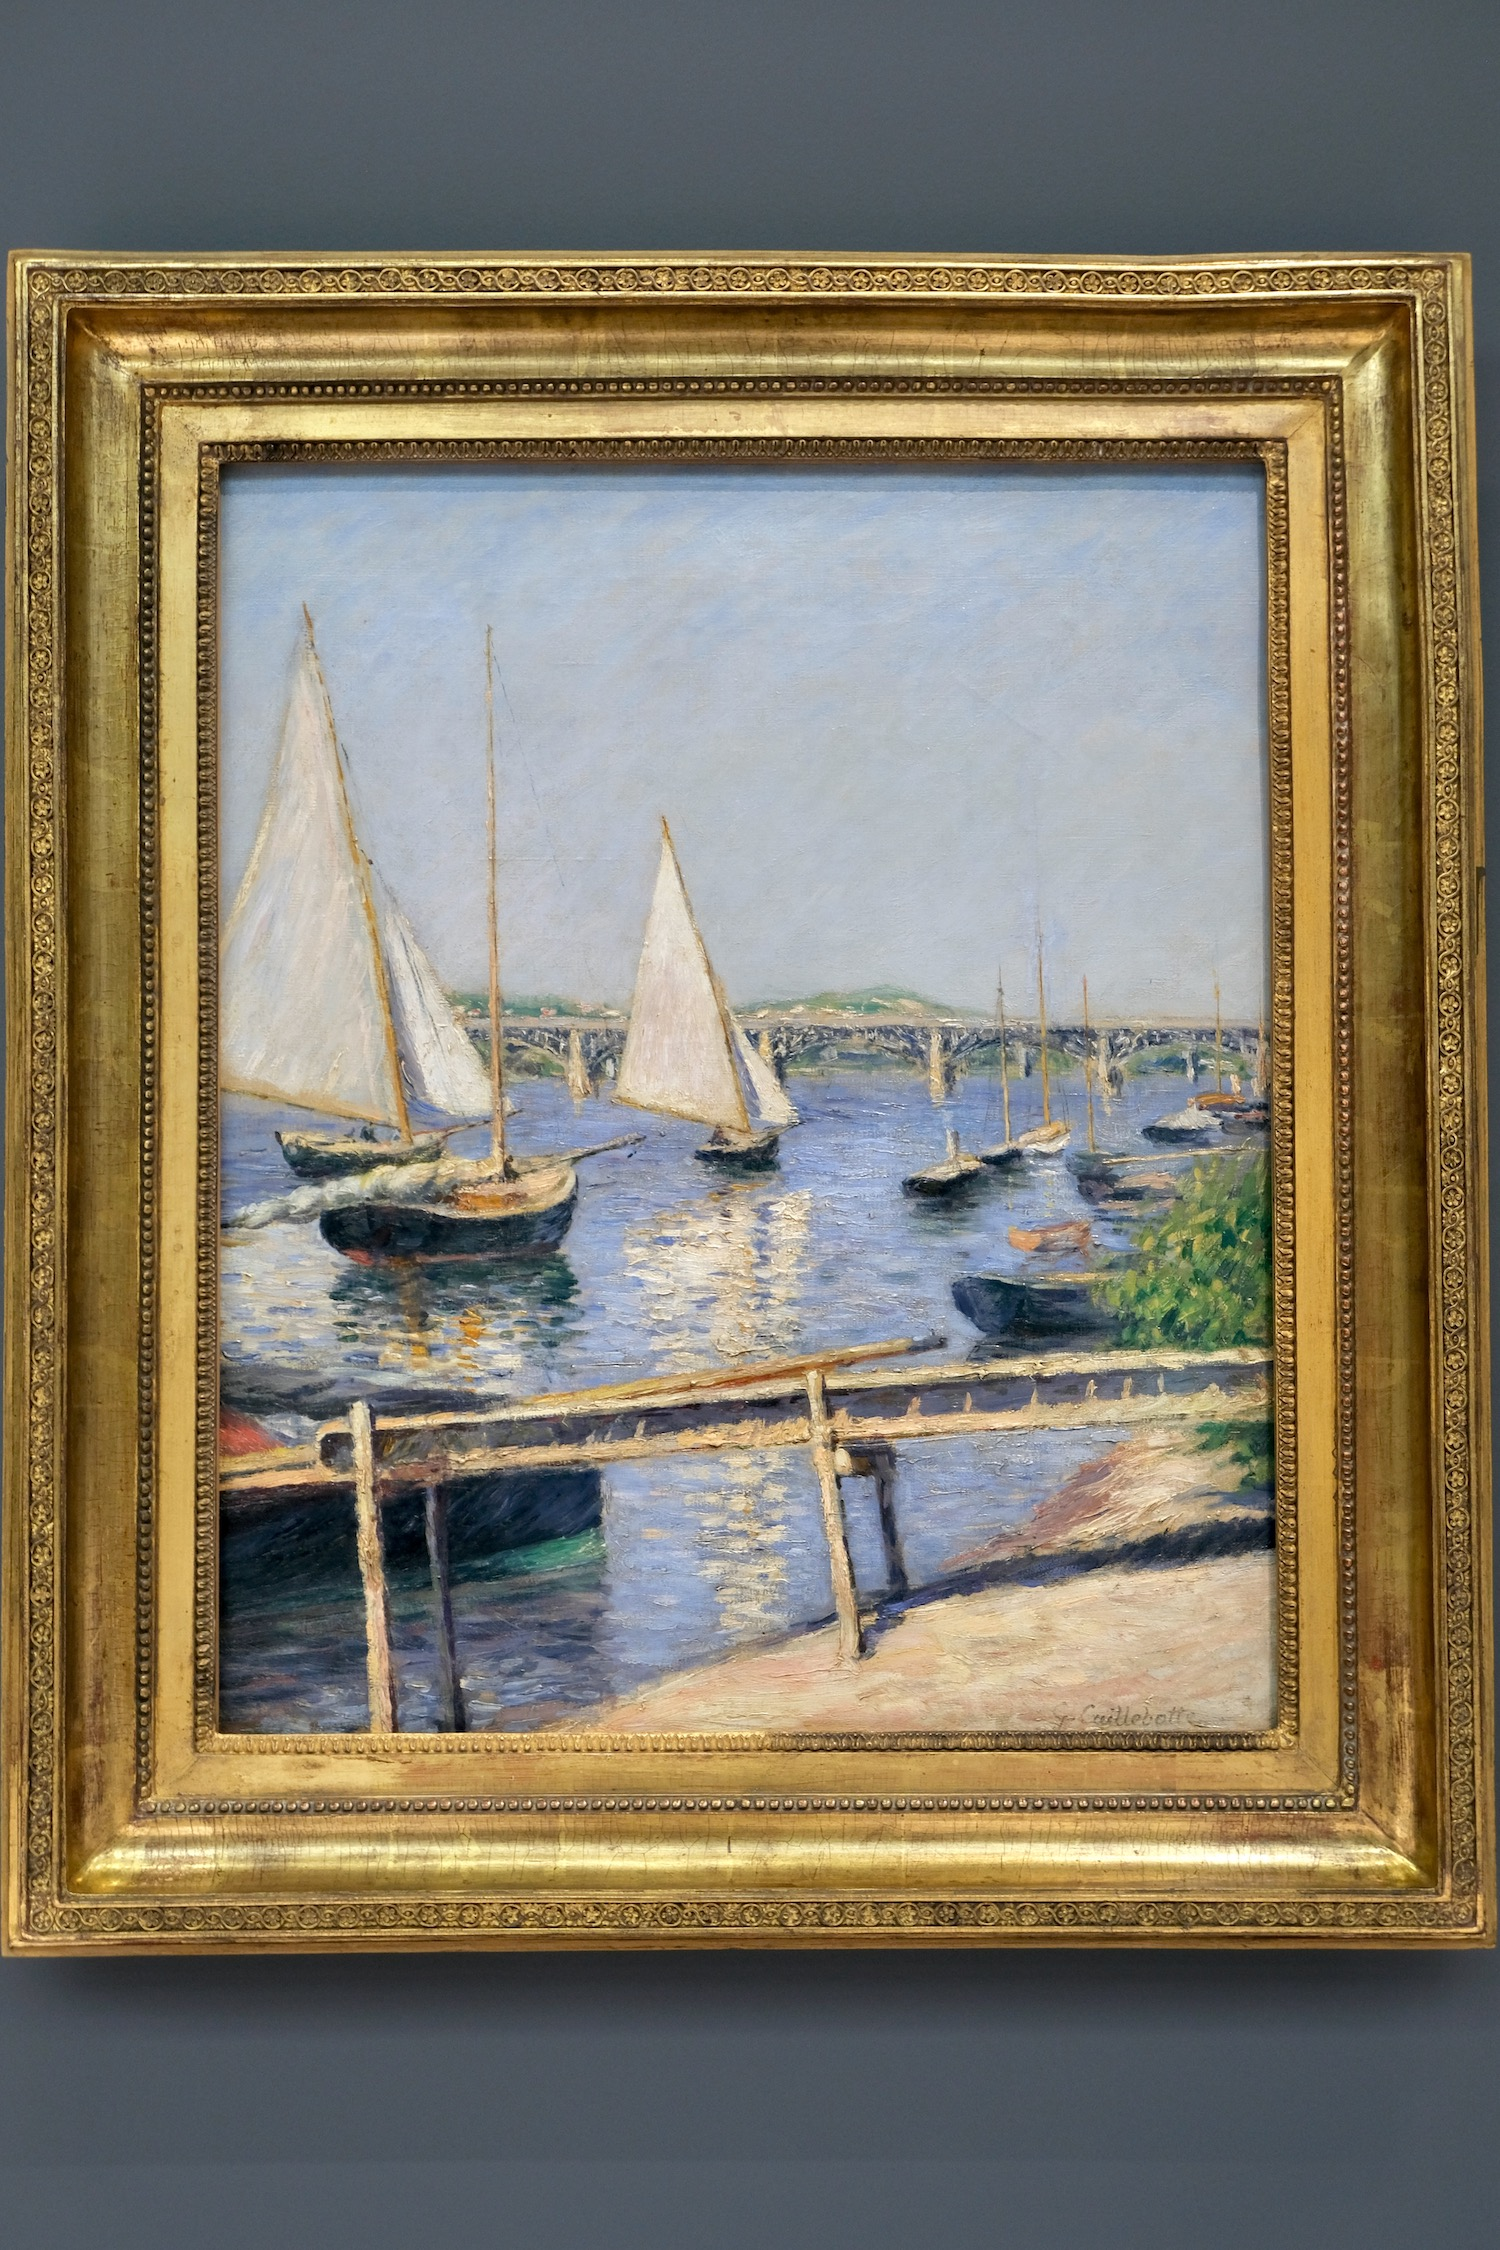 Caillebotte Sailboats